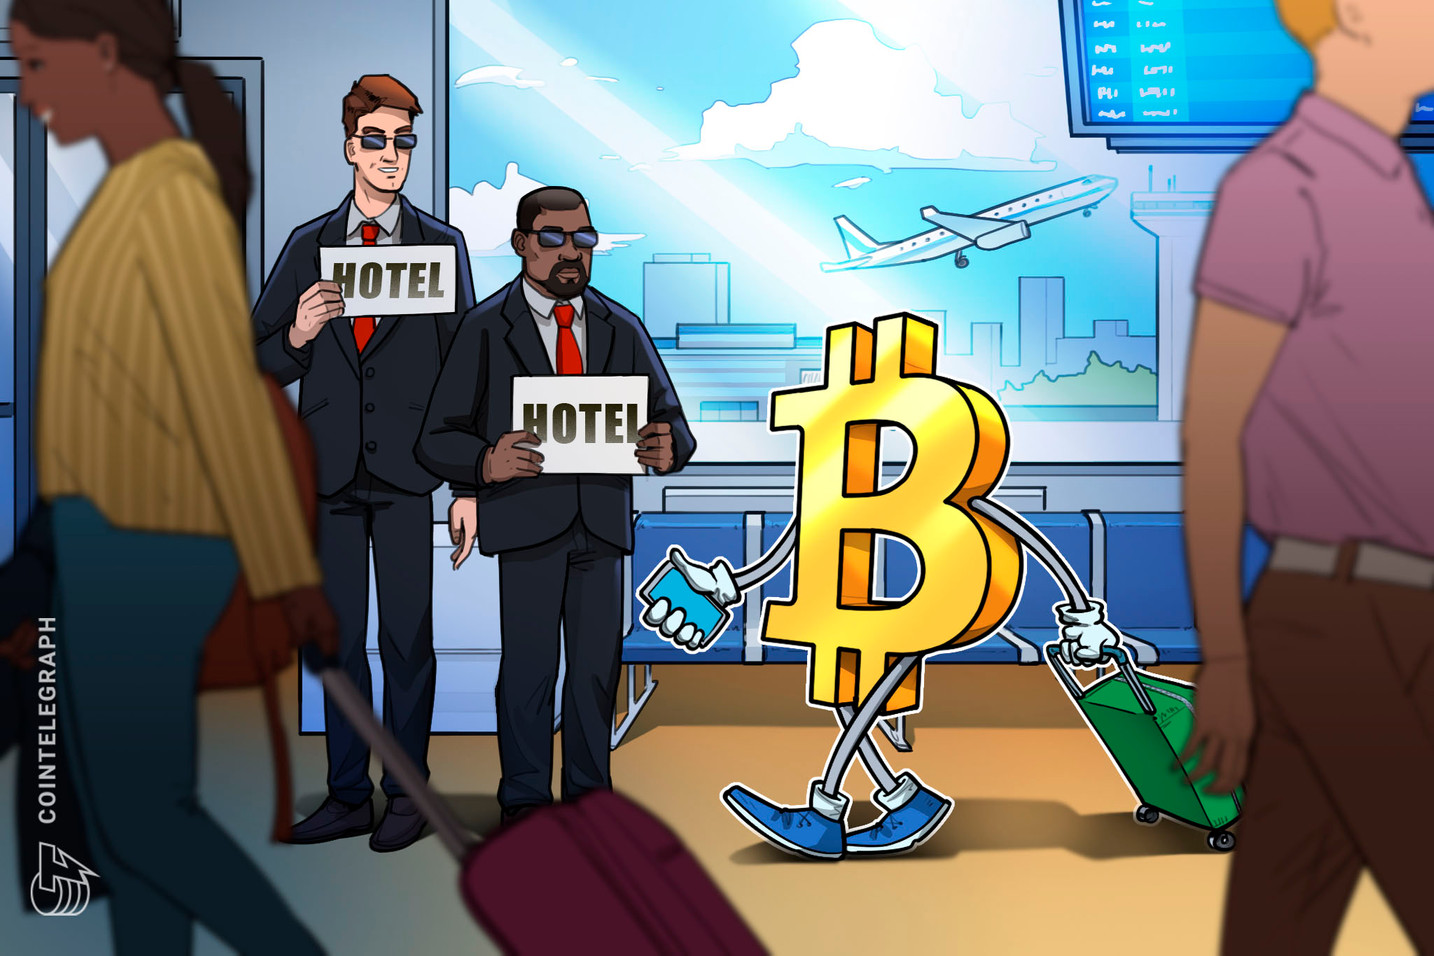 US luxury hotel brand to begin accepting Bitcoin payments